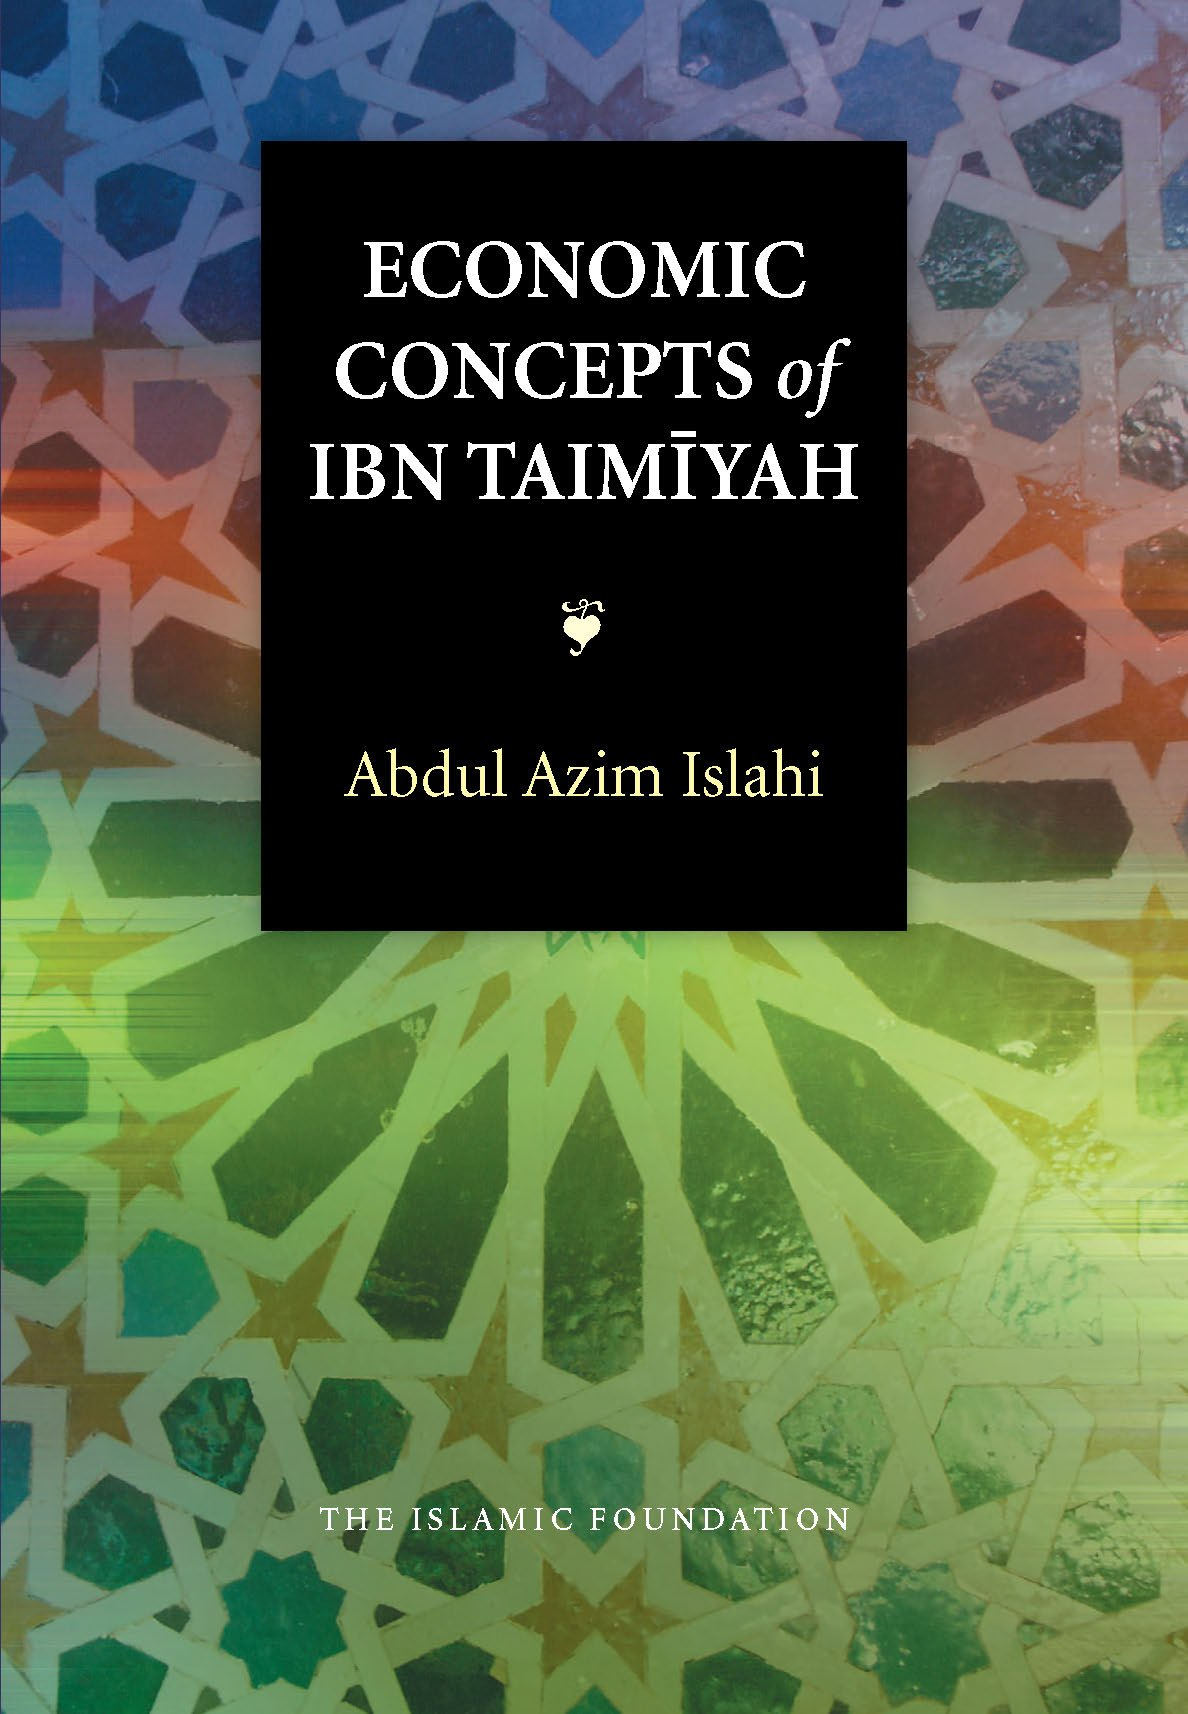 Economic Concepts of Ibn Taimiyah (Islamic Economics Book 12)